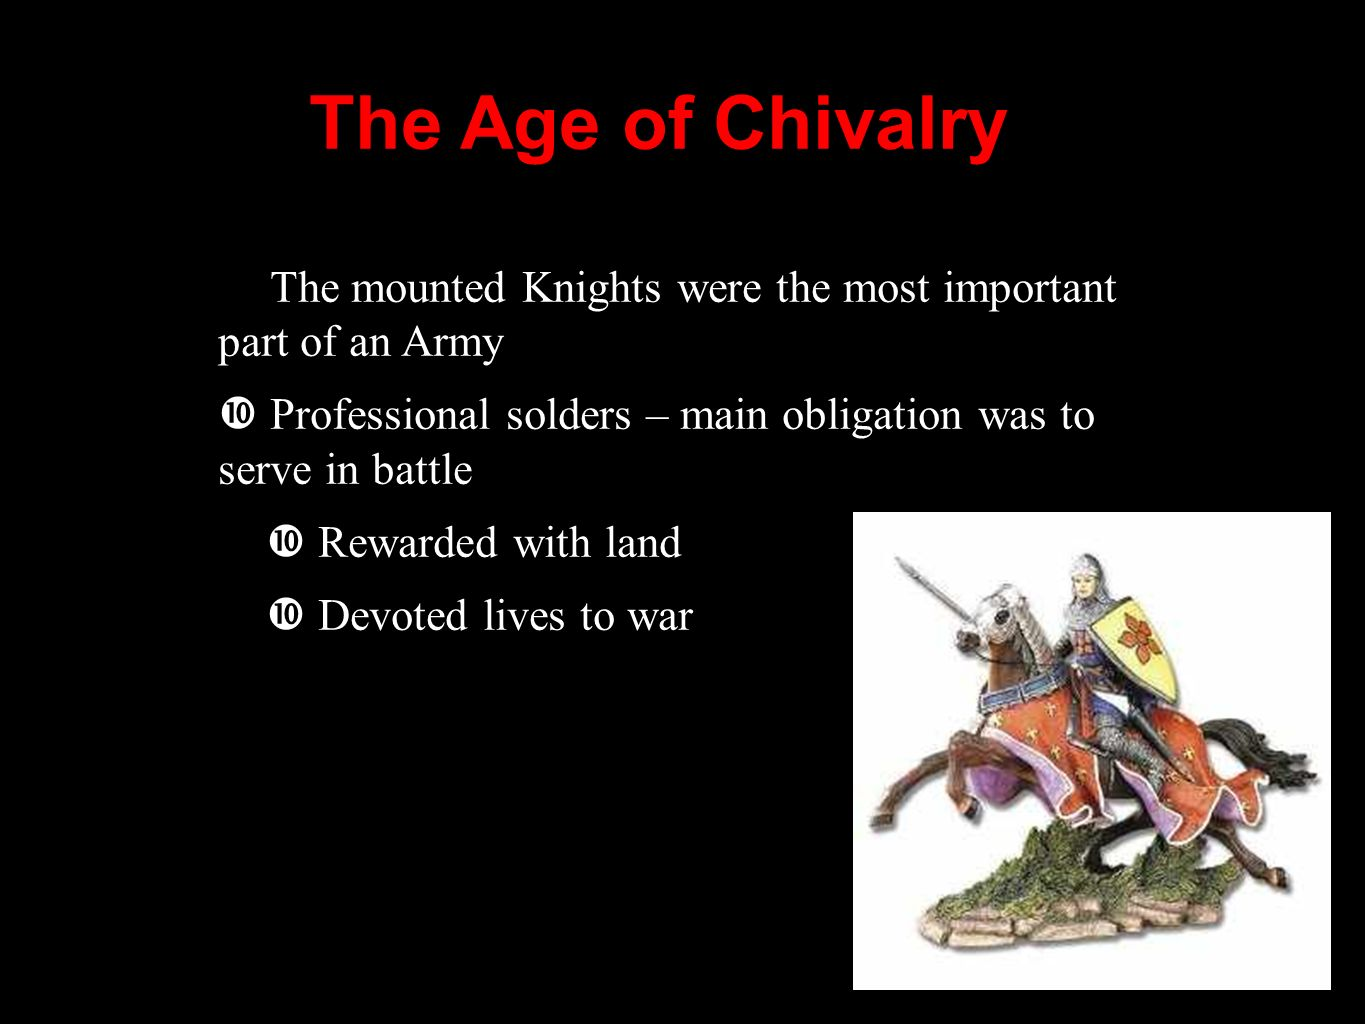 The Age of Chivalry The mounted Knights were the most important part of an Army Professional solders – main obligation was to serve in battle Rewarded